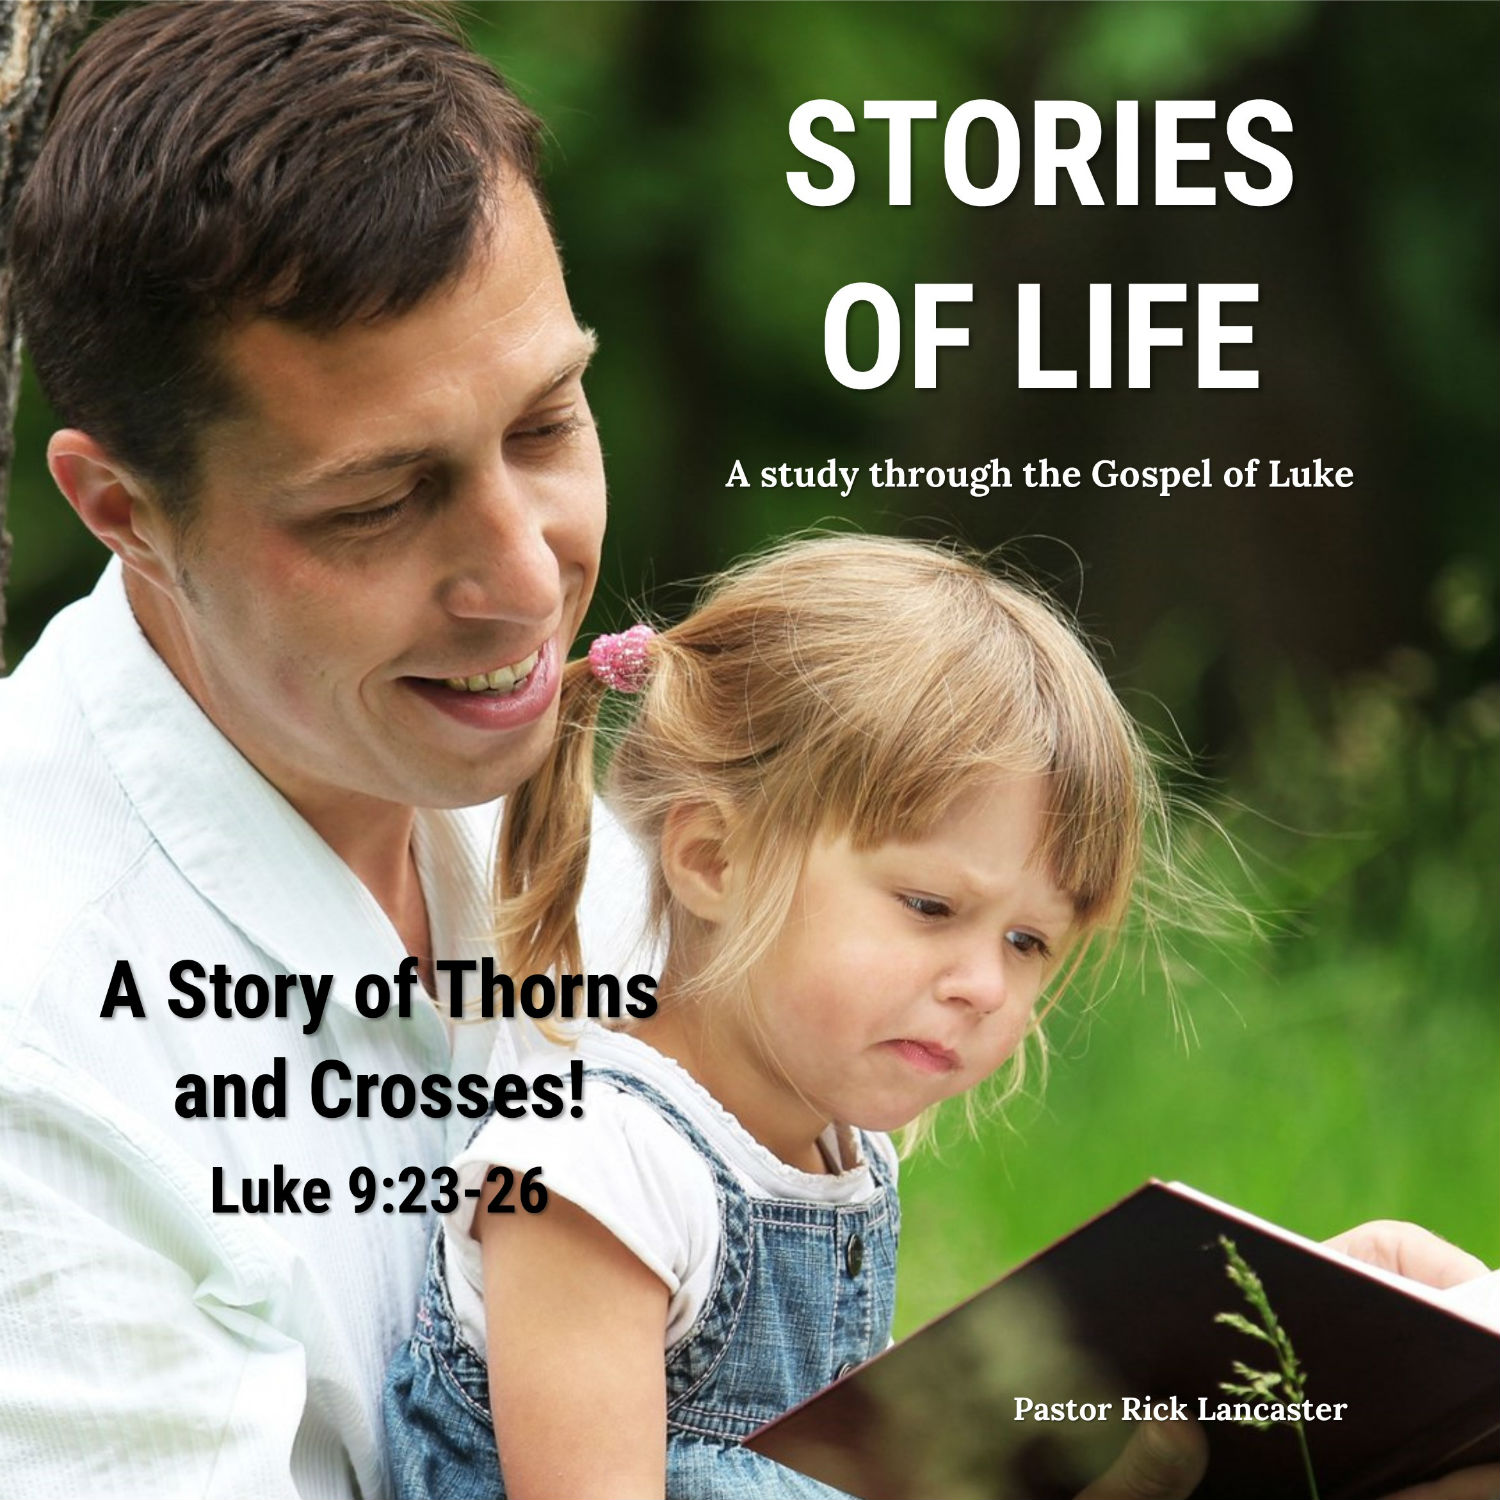 A Story of Thorns and Crosses – Luke 9:23-26